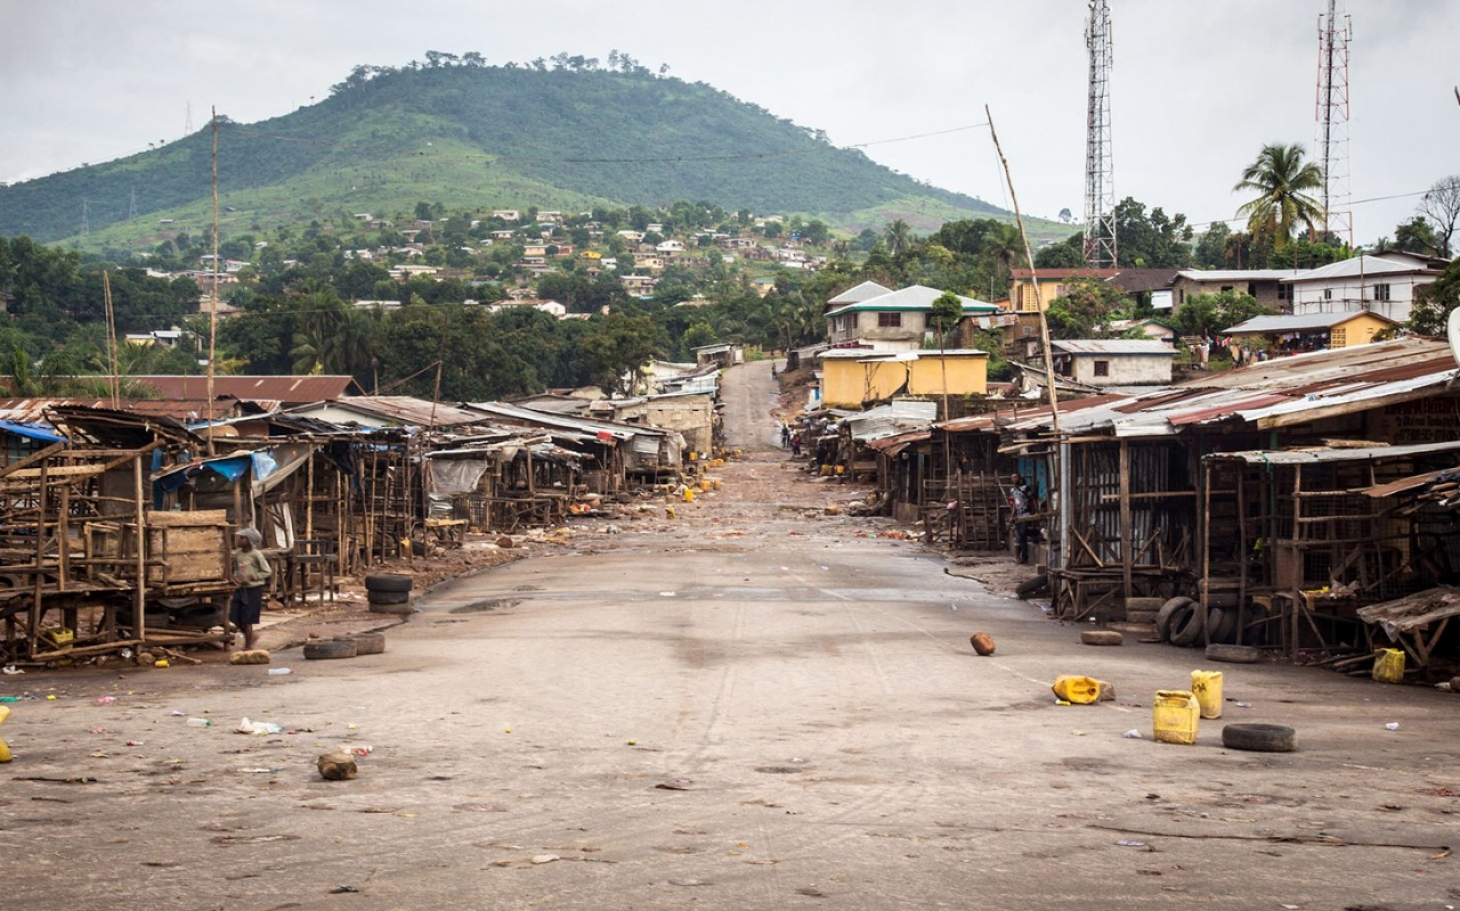 Millions in Sierra Leone on Ebola lockdown | Al Jazeera America